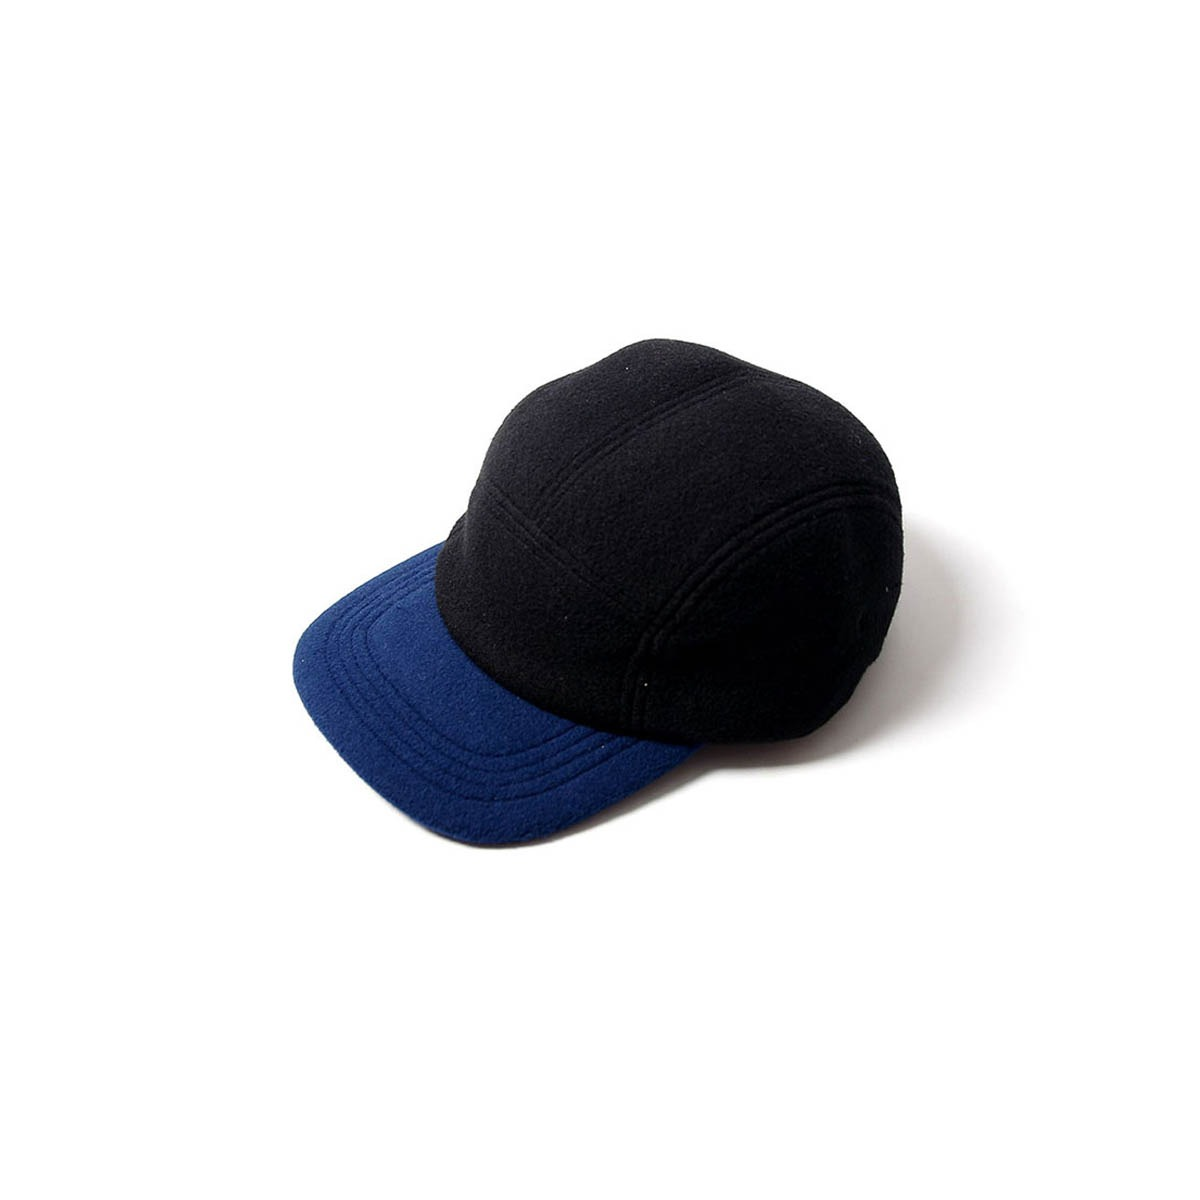 [BEHEAVYER] BHR FLLECE CAMP CAP 'BLACK'